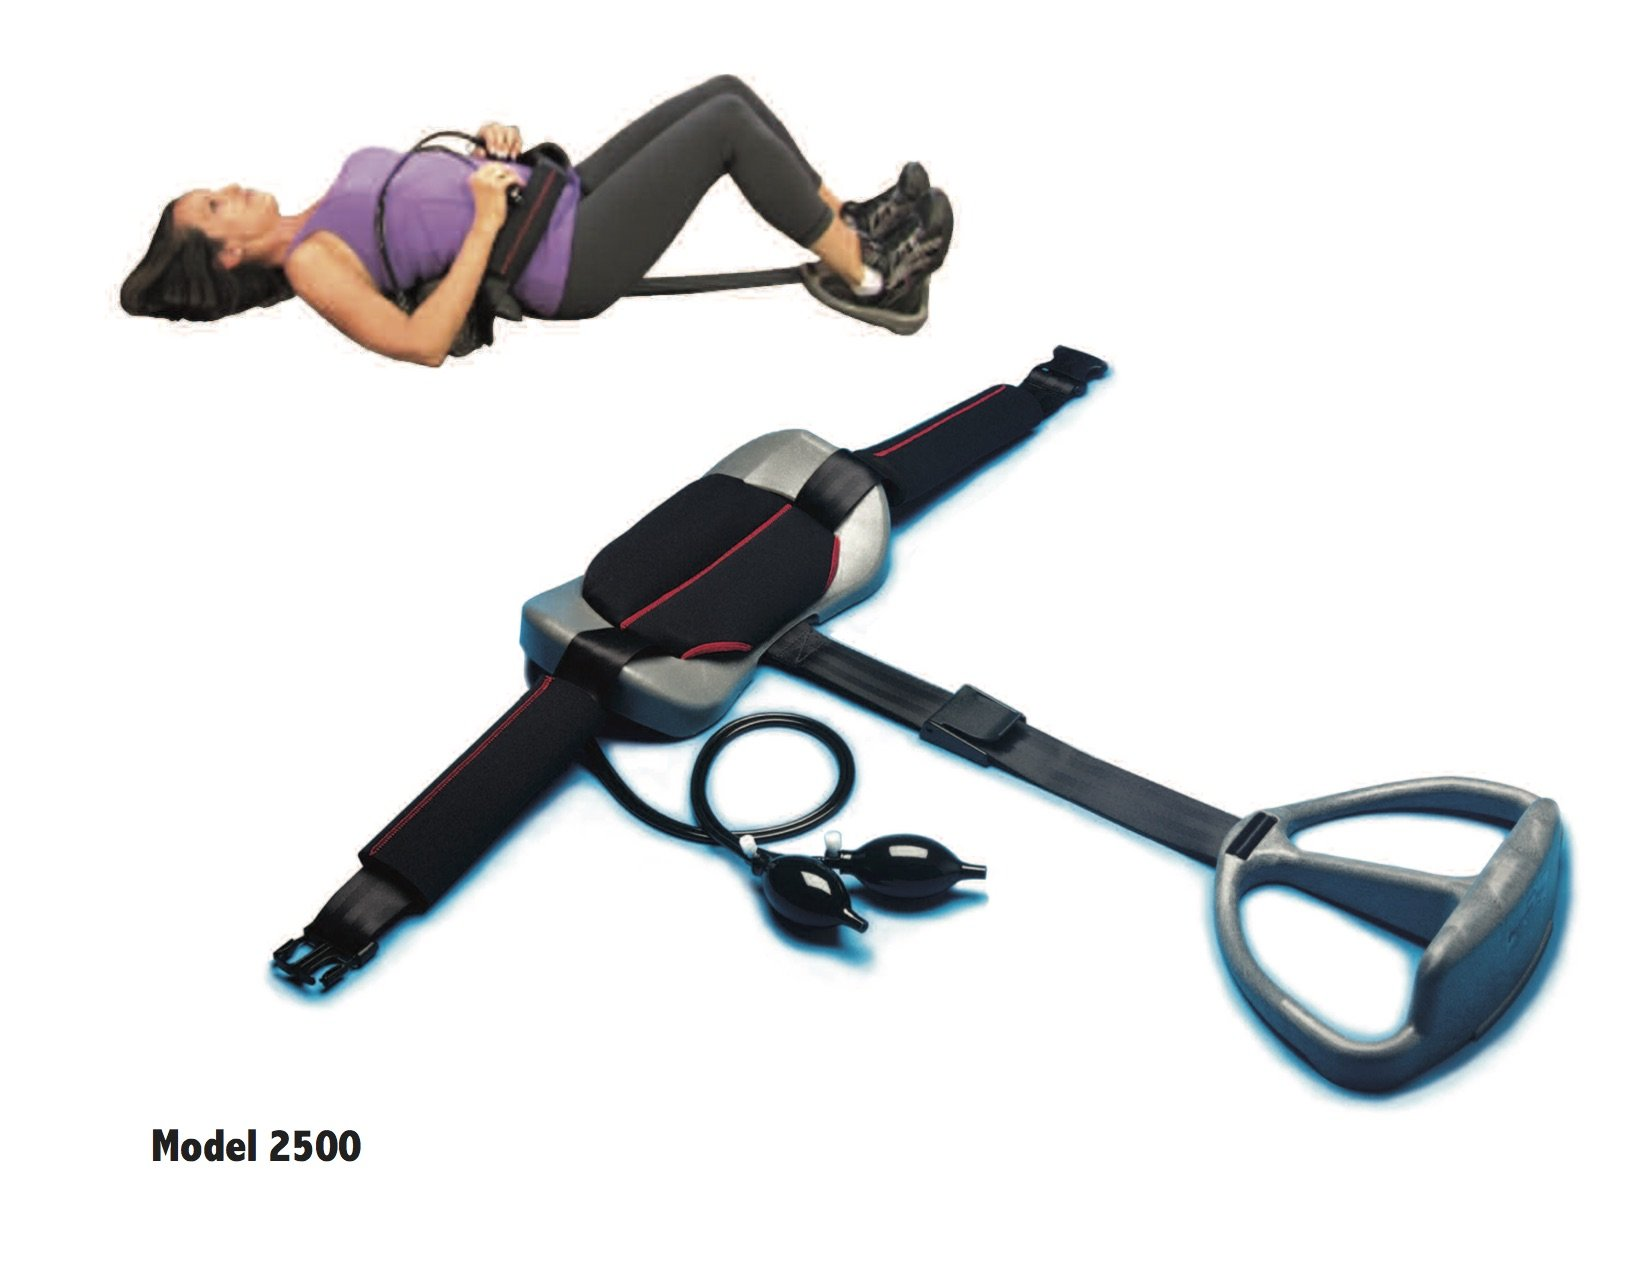 Posture Pump Relief For Sciatica and Low Back Pain - Penta Vec Model 2500 by Posture Pump